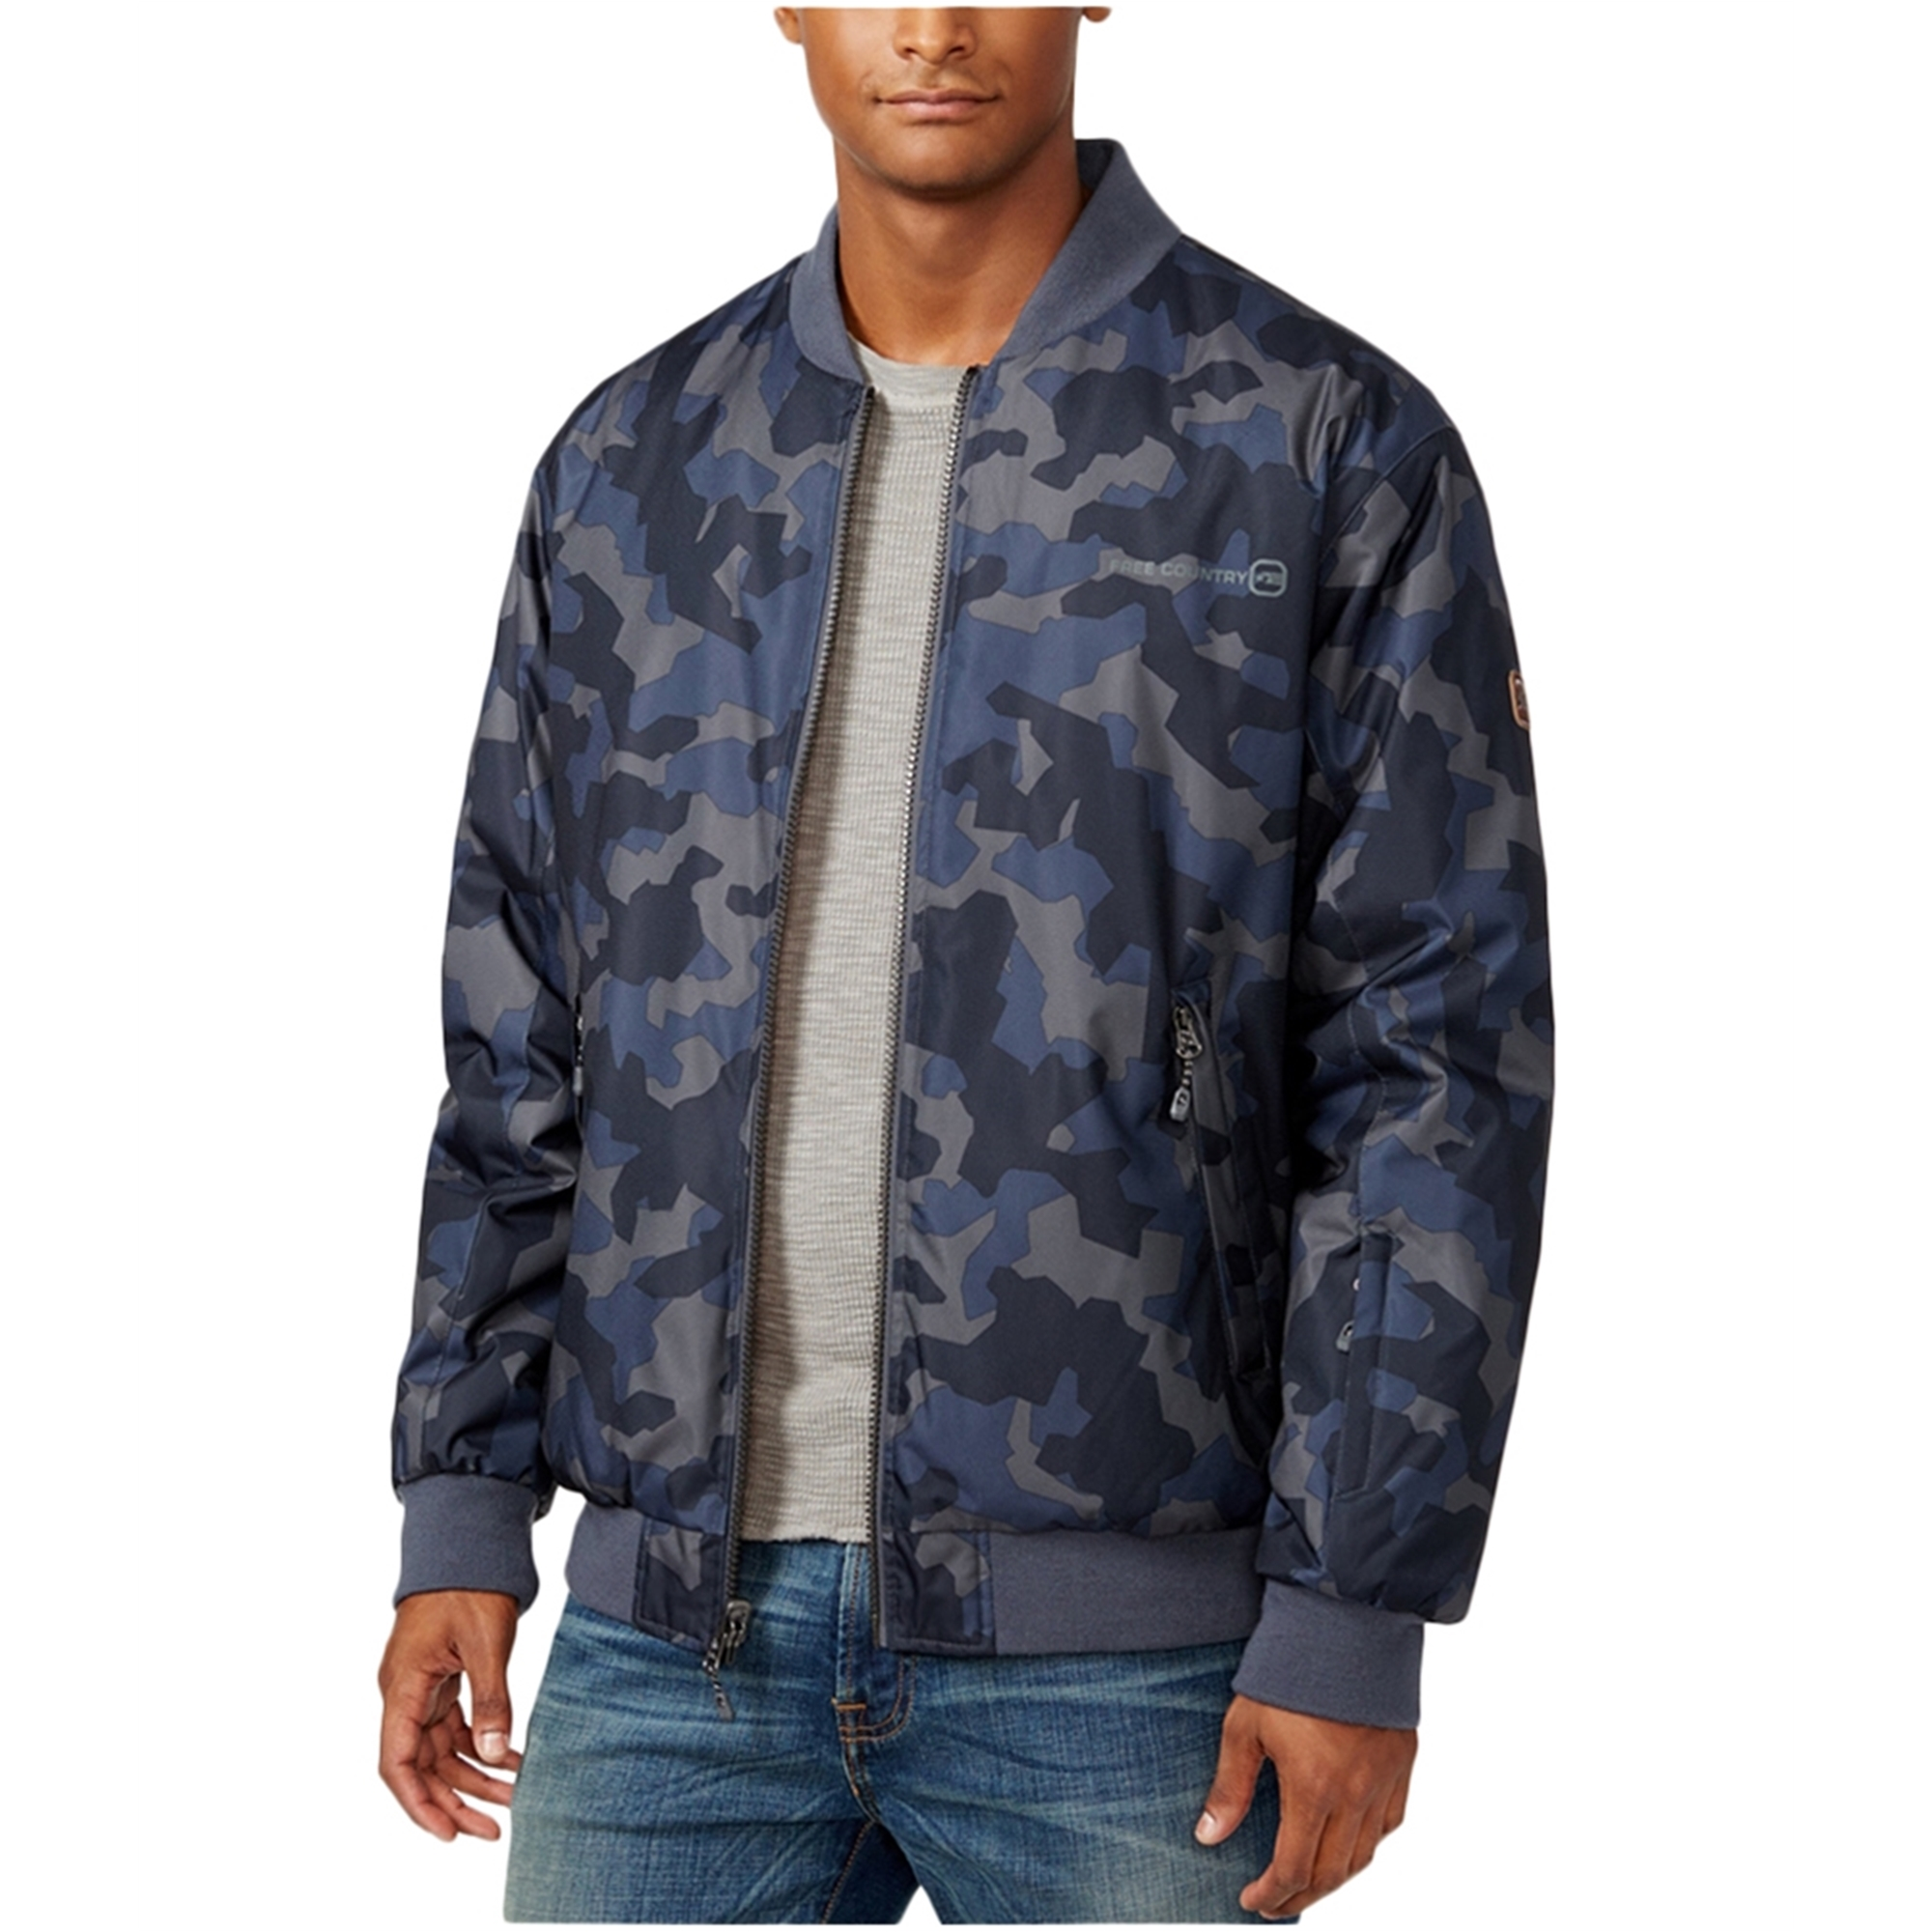 Free Country Mens Reversible Camo Bomber Jacket